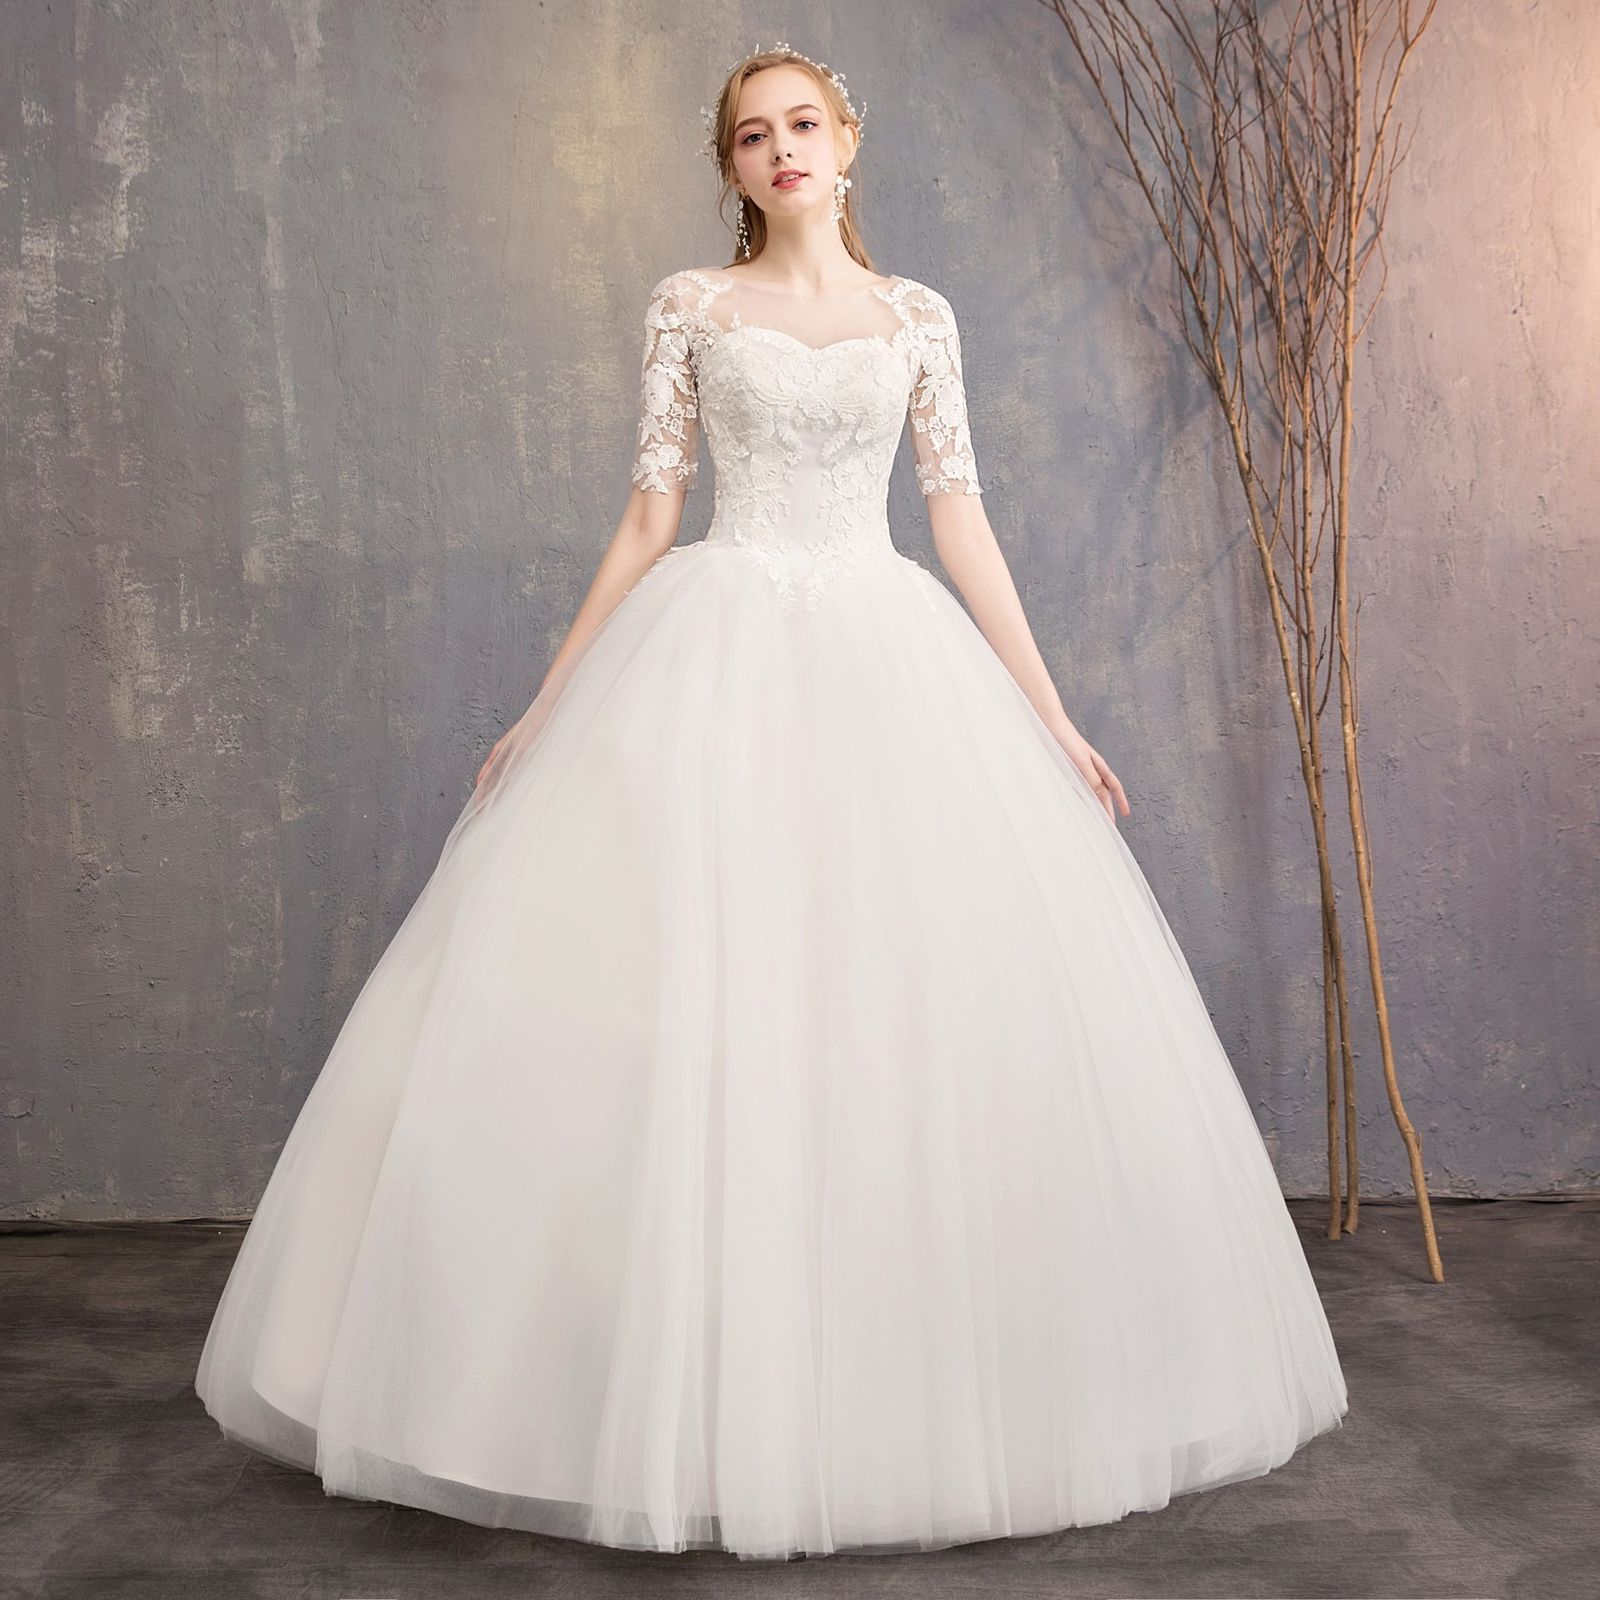 2019 Wedding Dresses With Sleeves: Short Sleeves Wedding Dress 2019 Ball Gowns Beige Lace